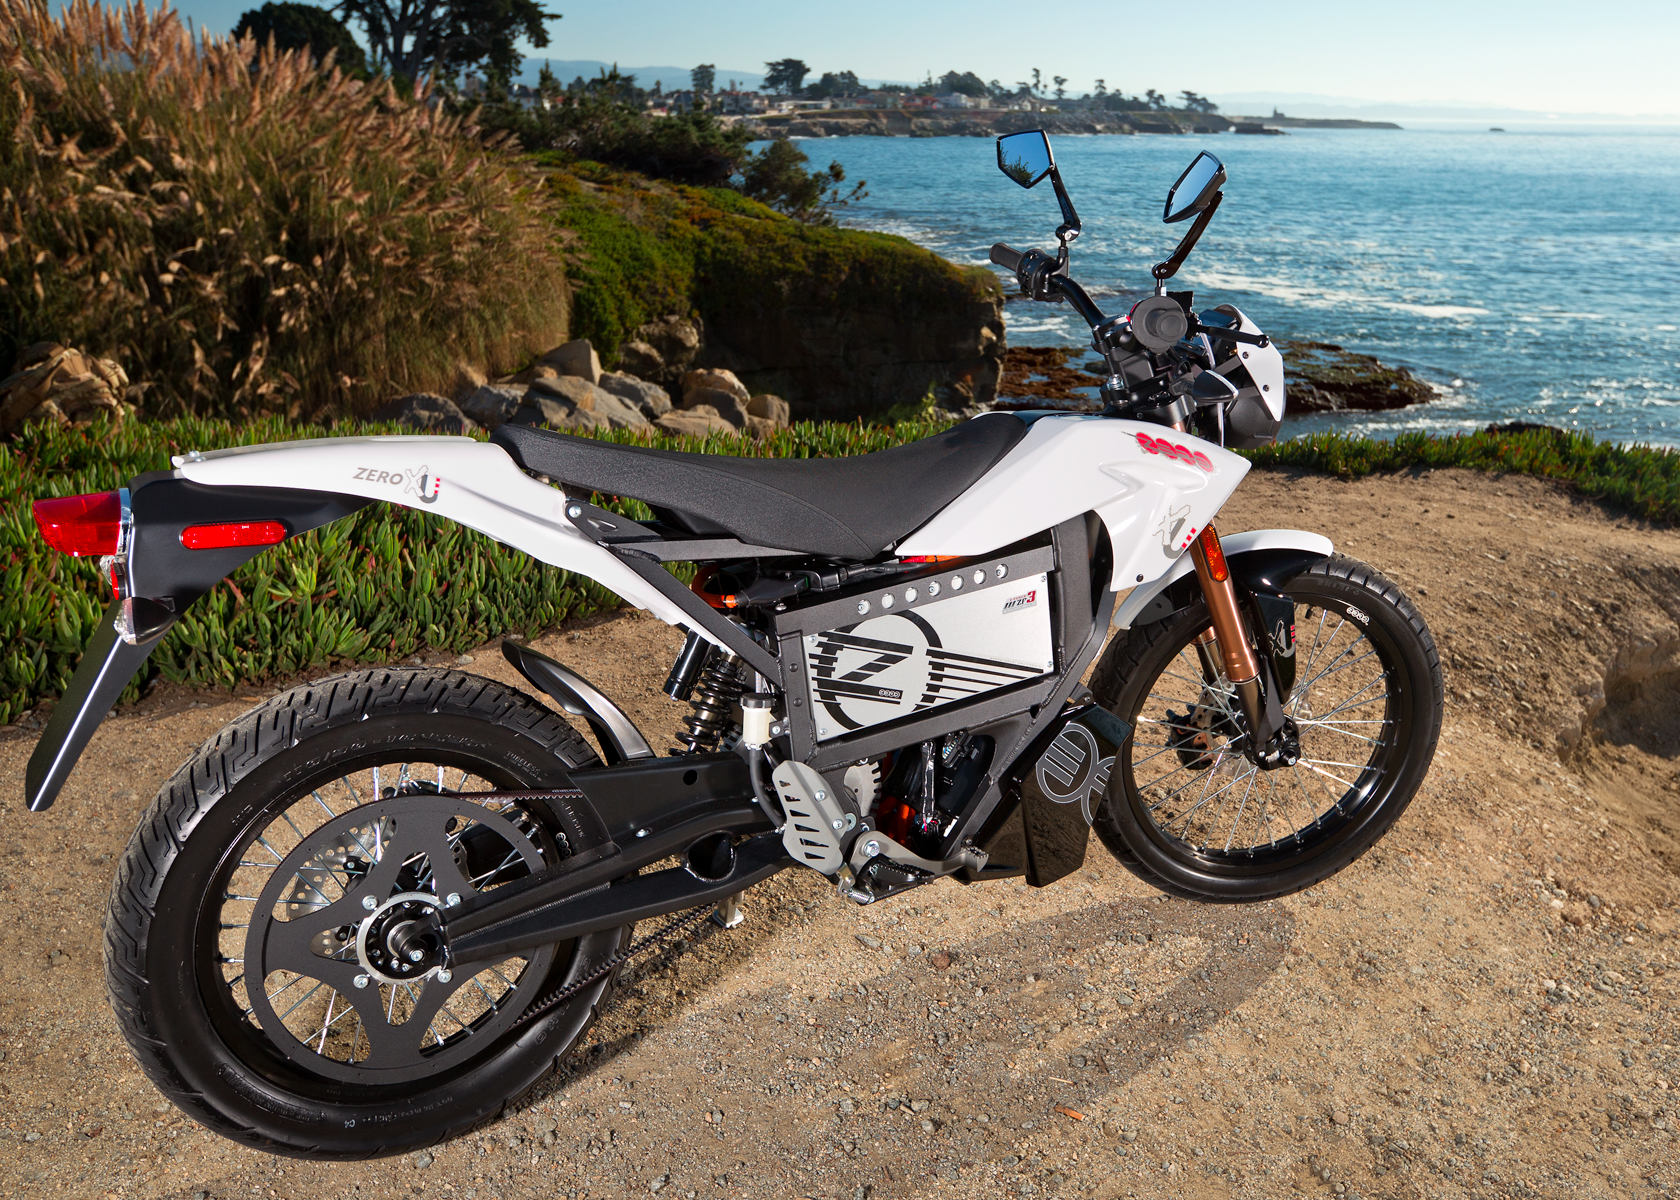 '.2012 Zero XU Electric Motorcycle: Profile, Pacific Ocean.'